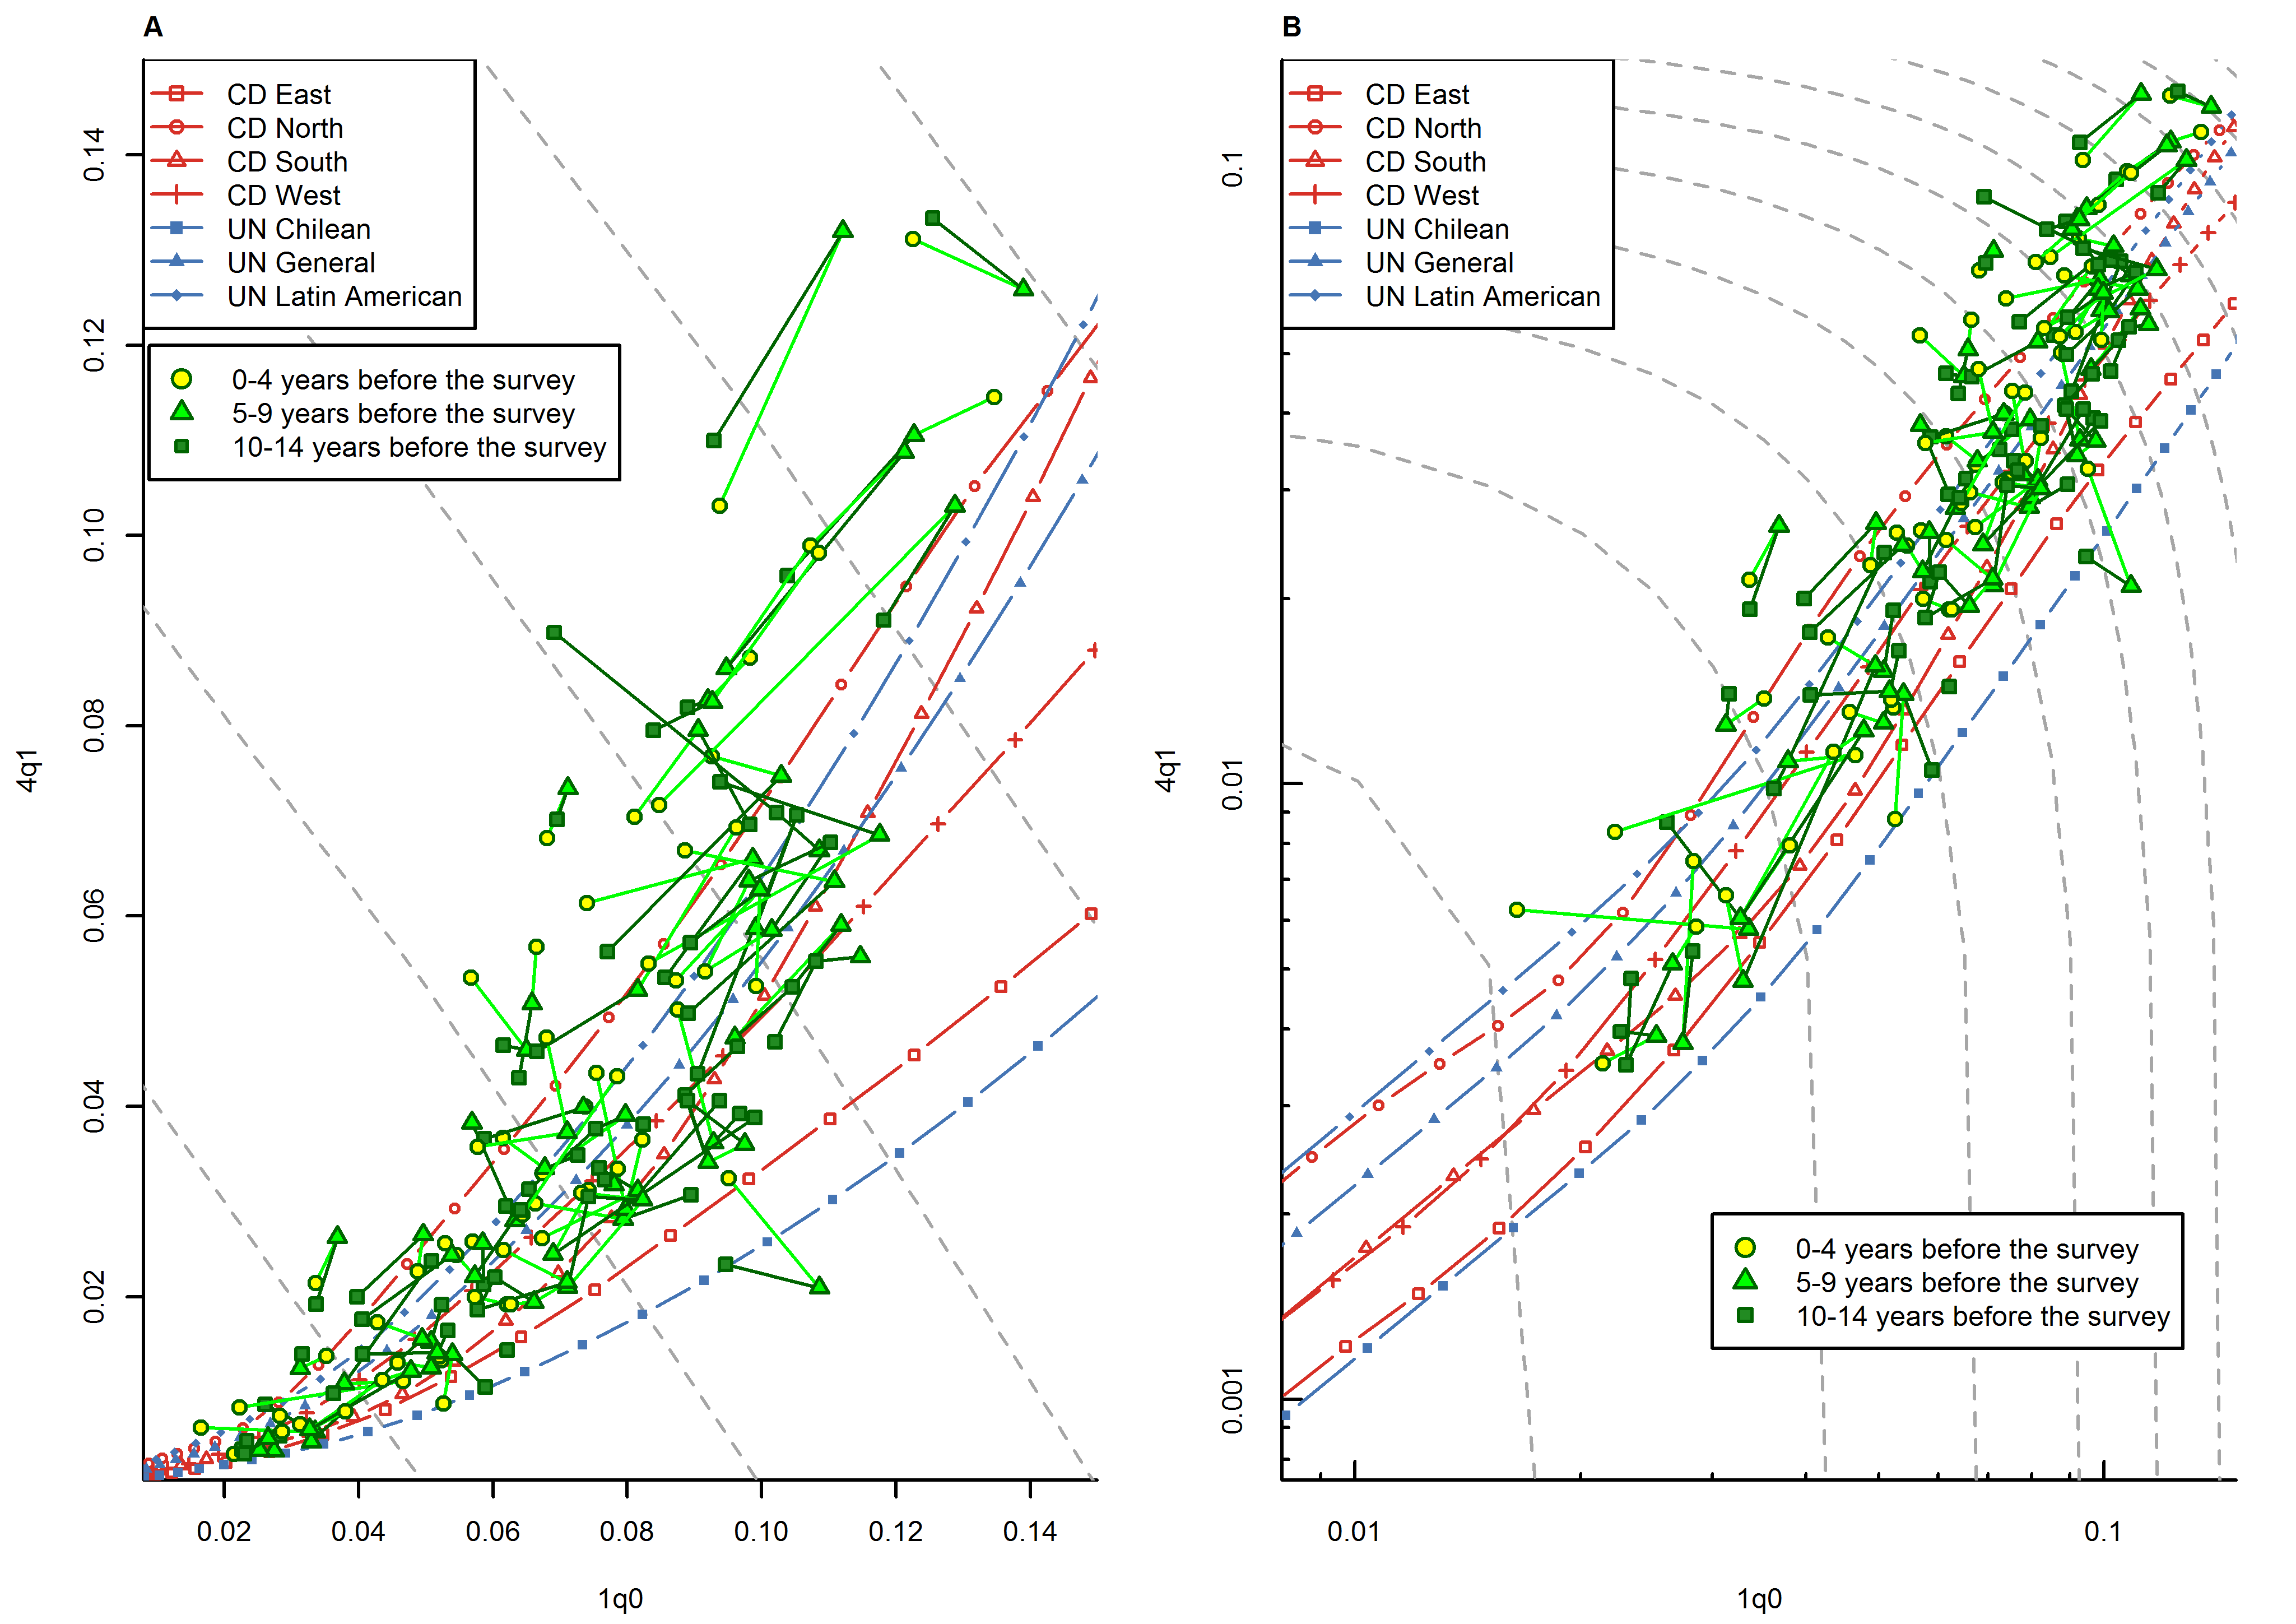 Relationship between <sub>1</sub><i>q</i><sub>0</sub> and <sub>4</sub><i>q</i><sub>1</sub> in WFS/DHS data from sub-Saharan African countries, by duration of the retrospective period.